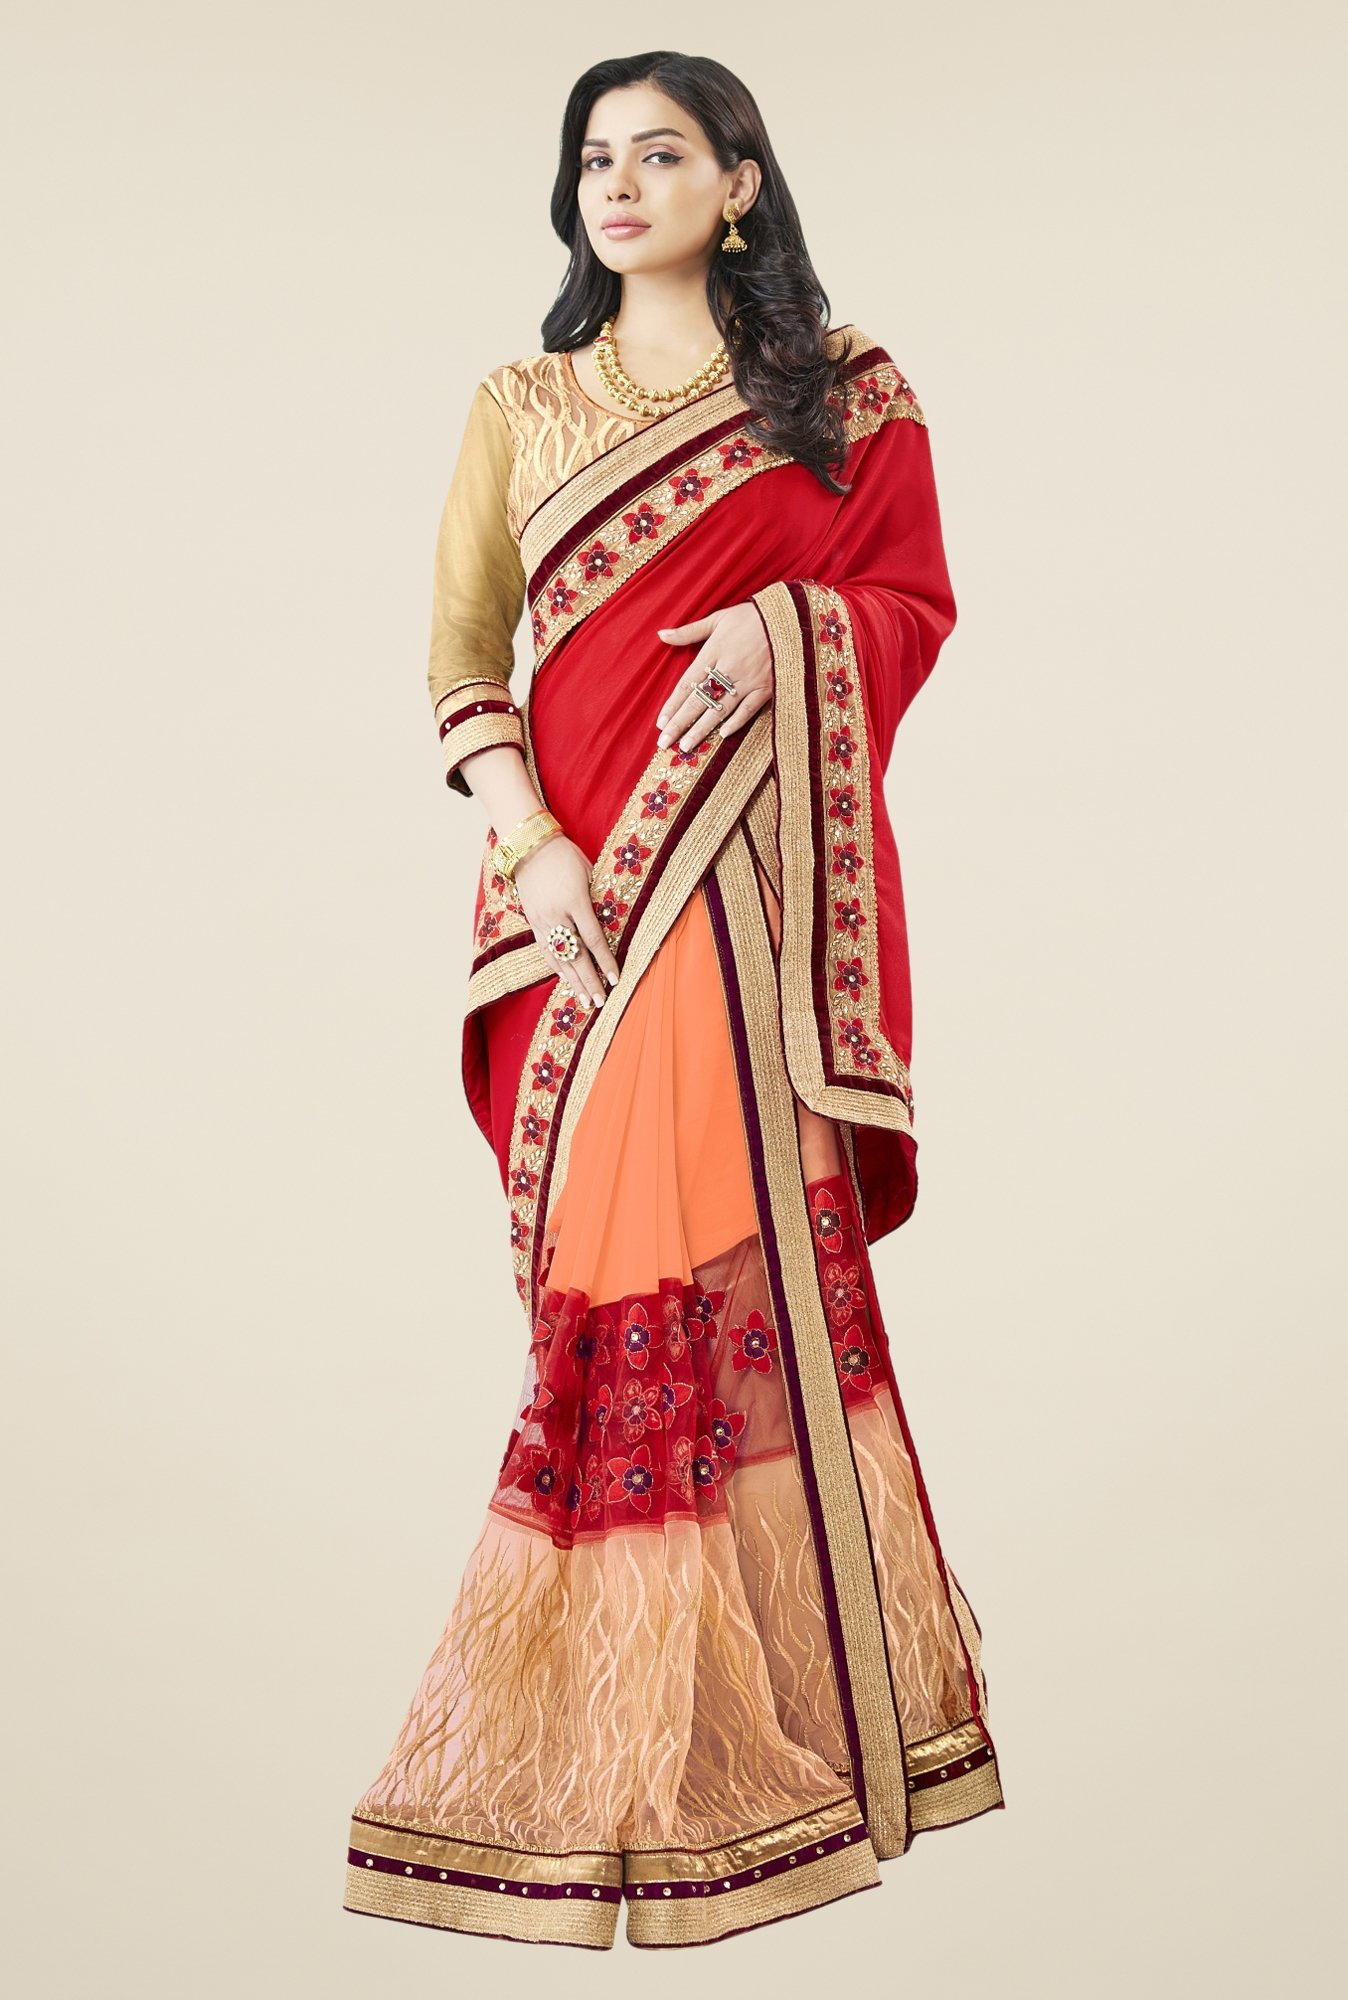 Triveni Orange & Red Embroidered Faux Georgette Saree